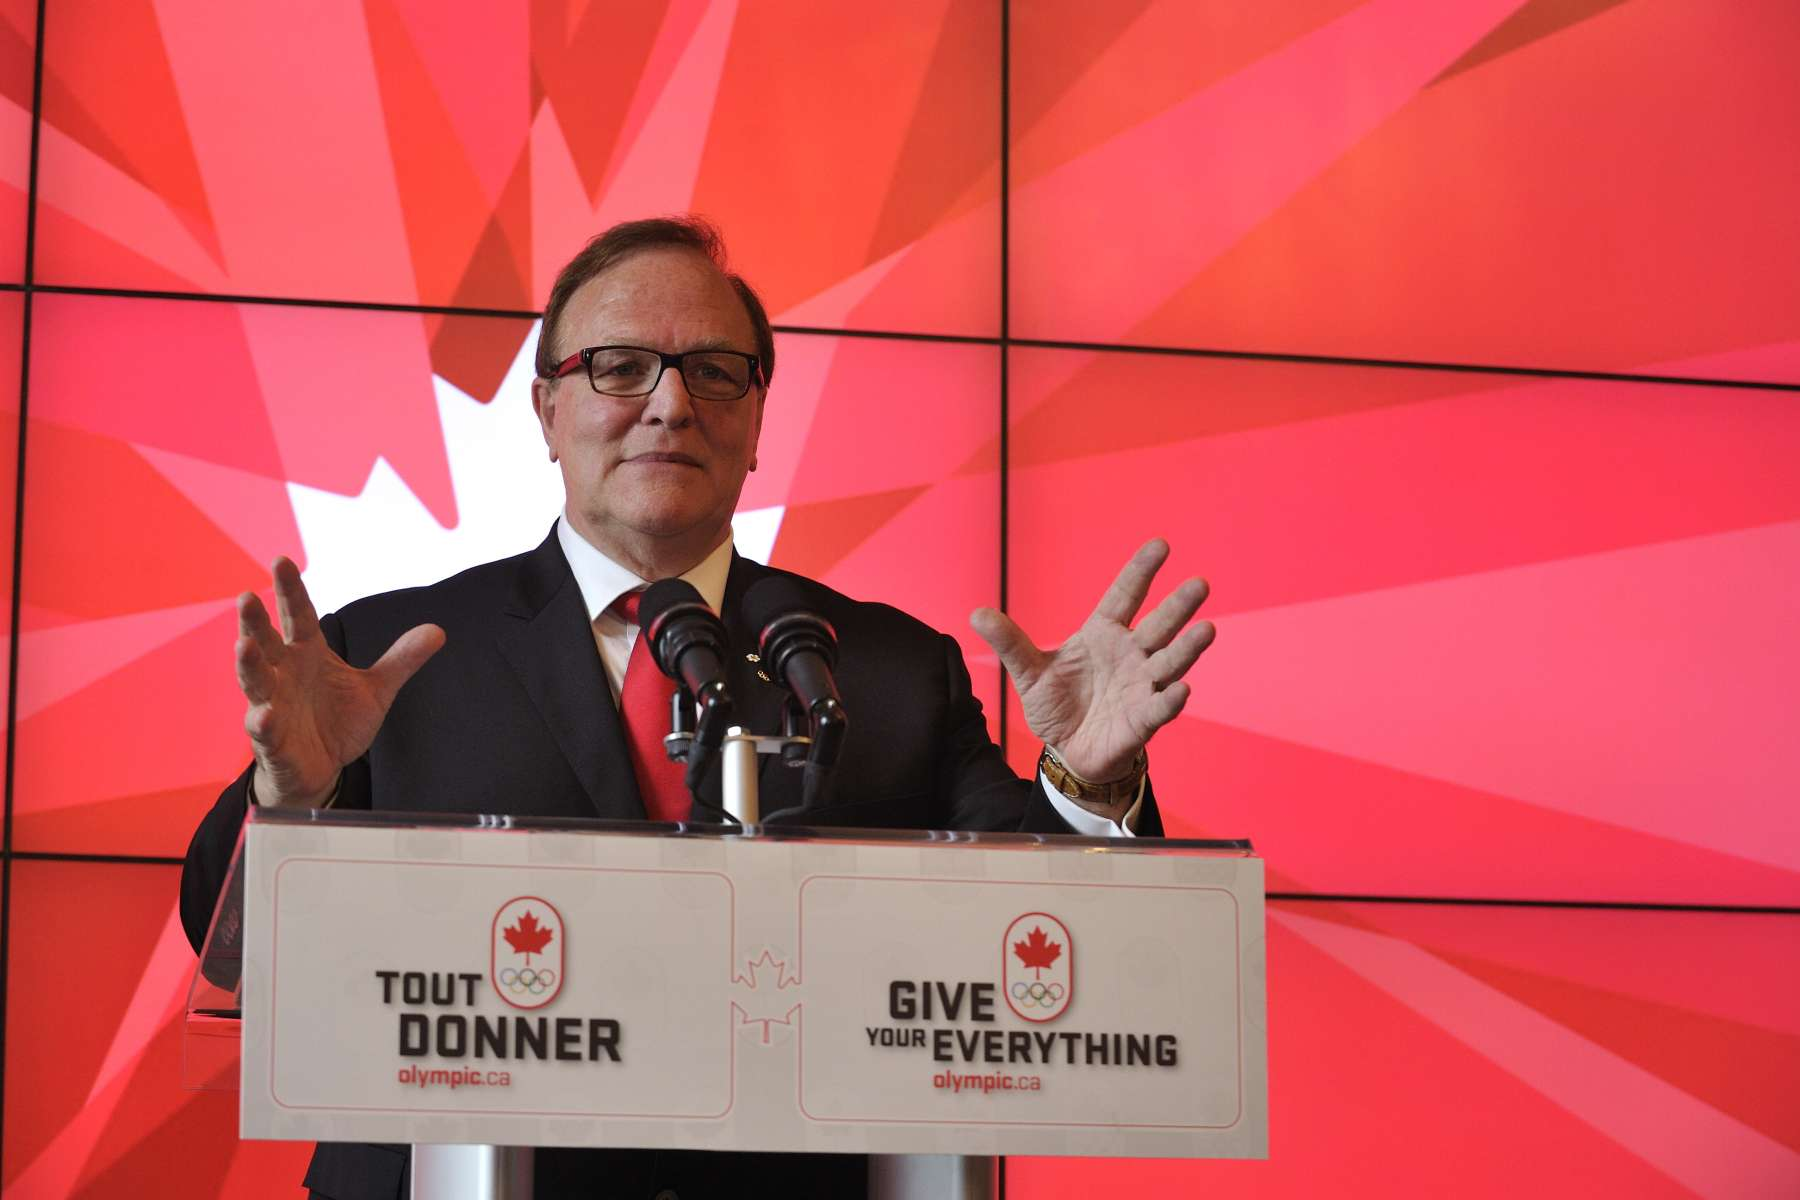 President of the Canadian Olympic Committee and host of the event Marcel Aubut also said a few words.